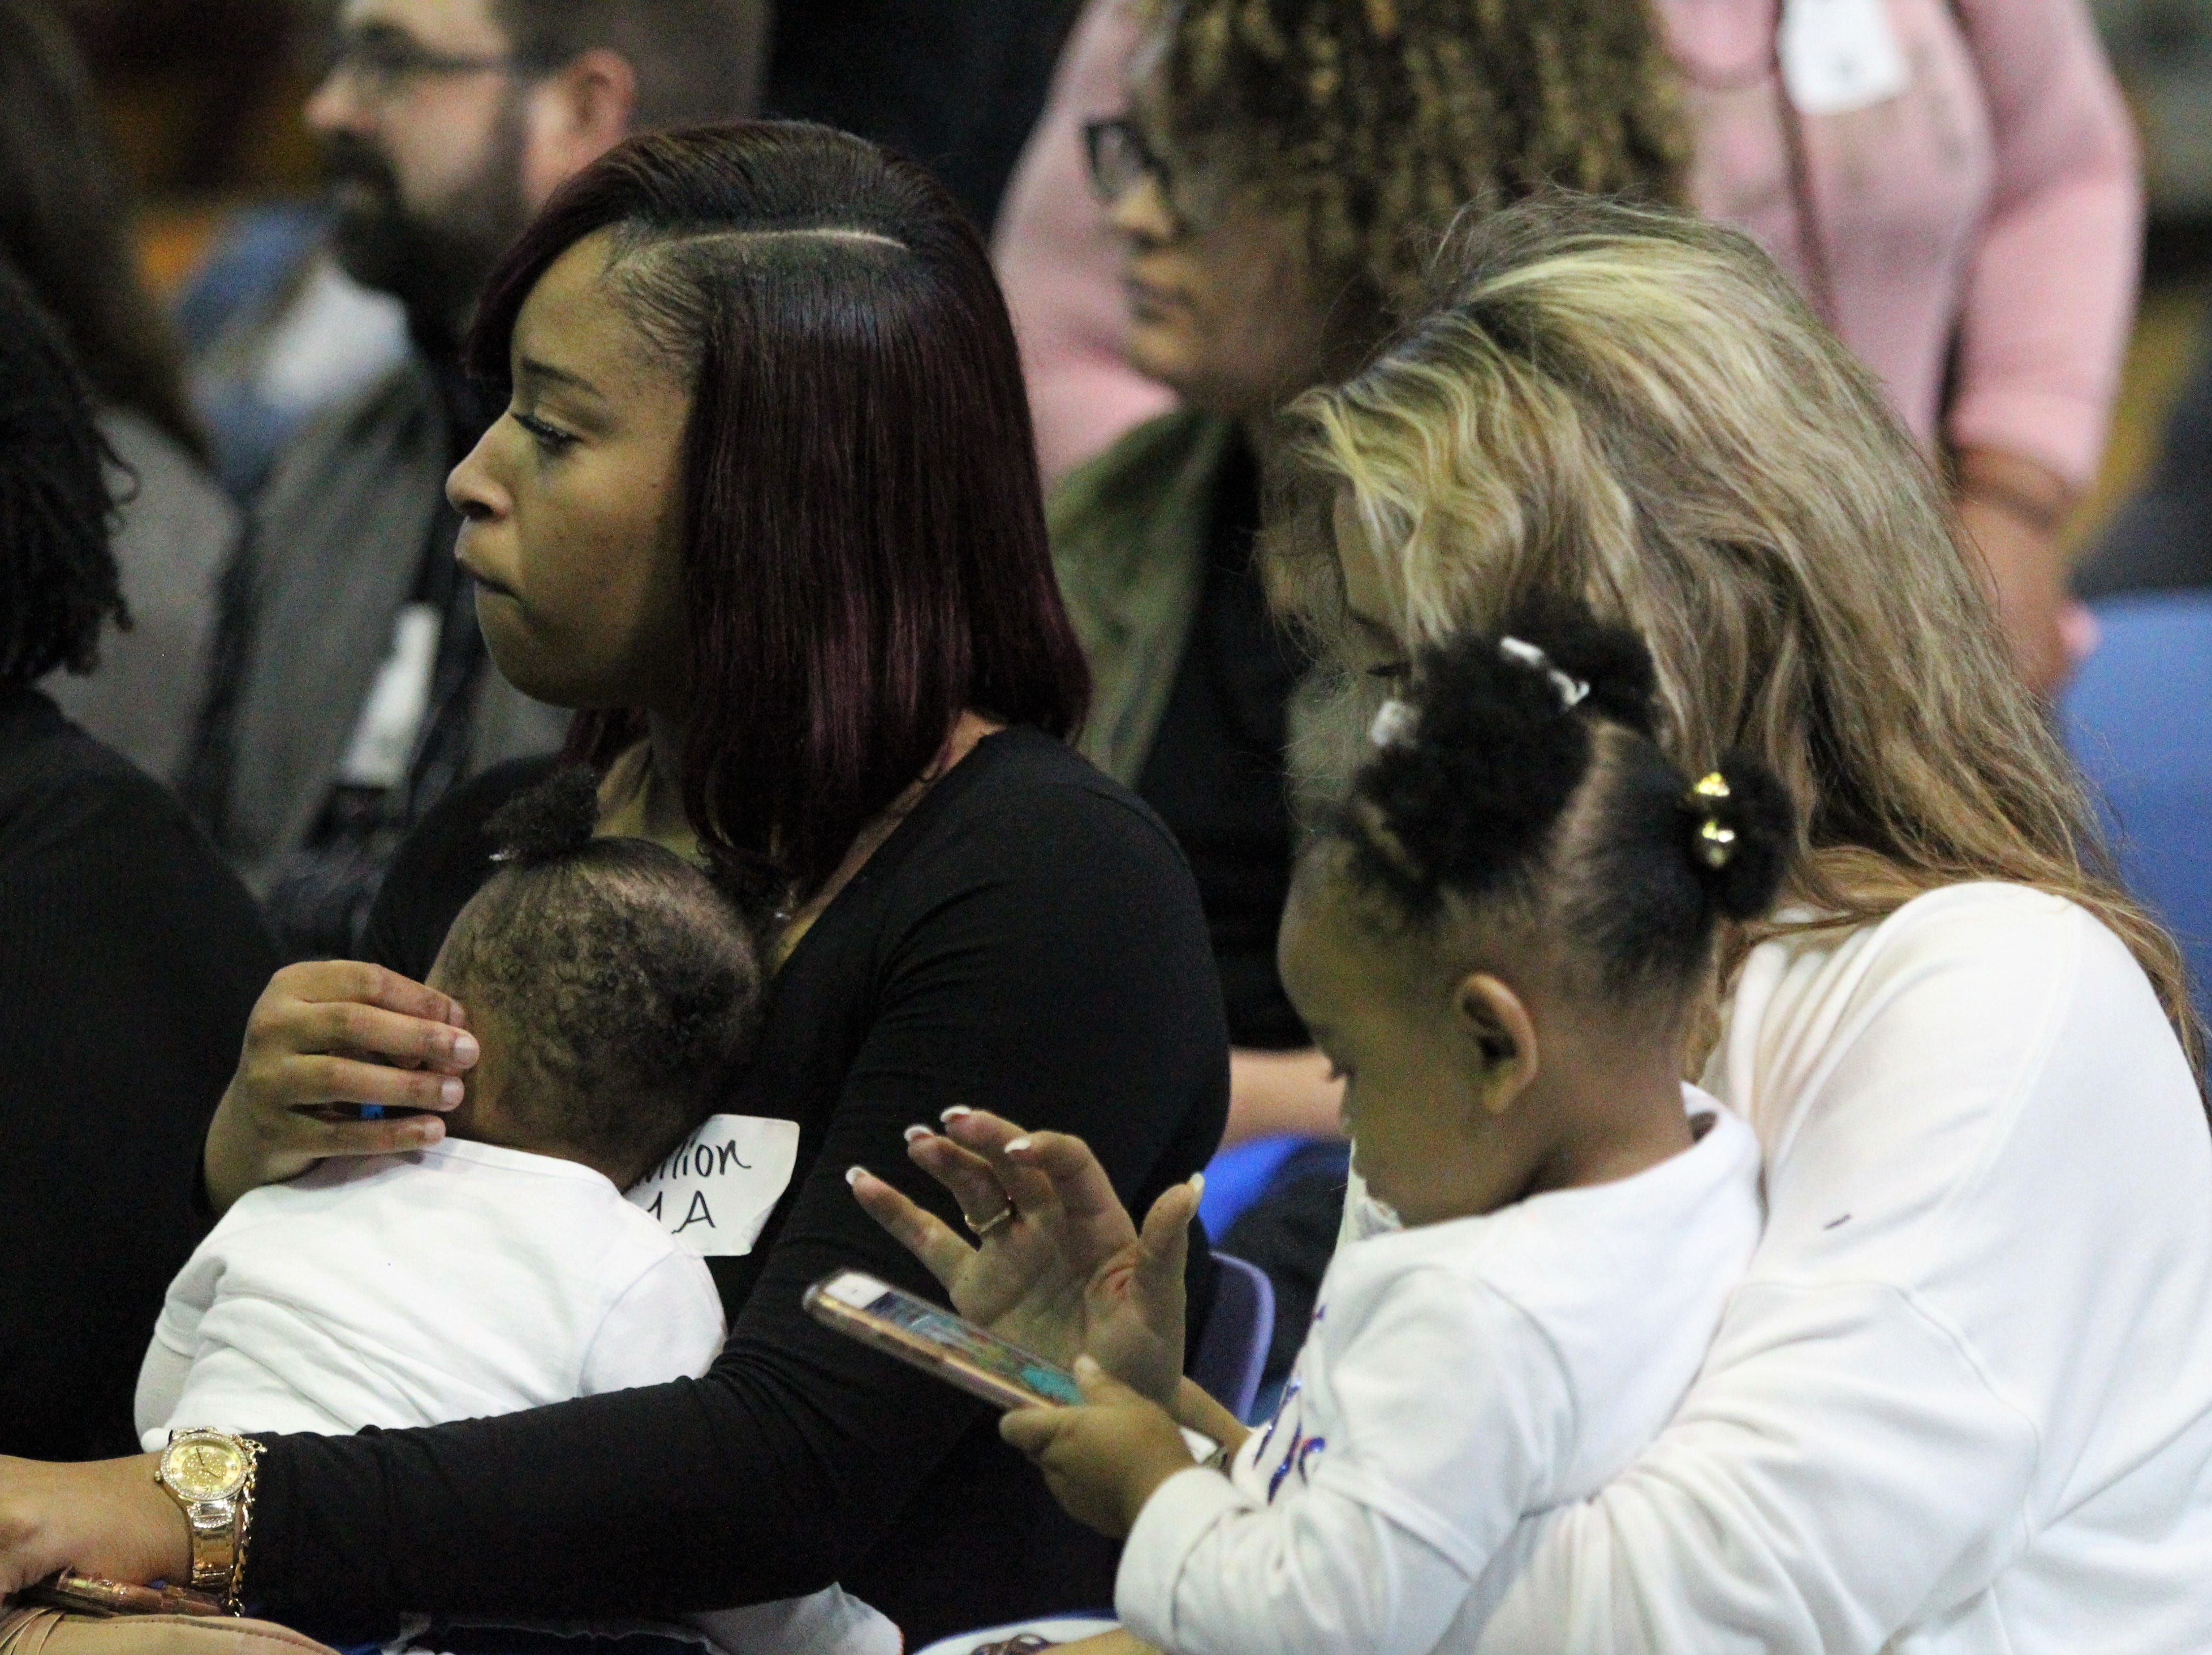 Jefferson County receiver Da'Shon Davis' daughters Desire (9 months) and De'ari (almost 2) wait with their mother during Jefferson County's signing day ceremony on Feb. 13, 2019. Davis signed with Tennessee State.